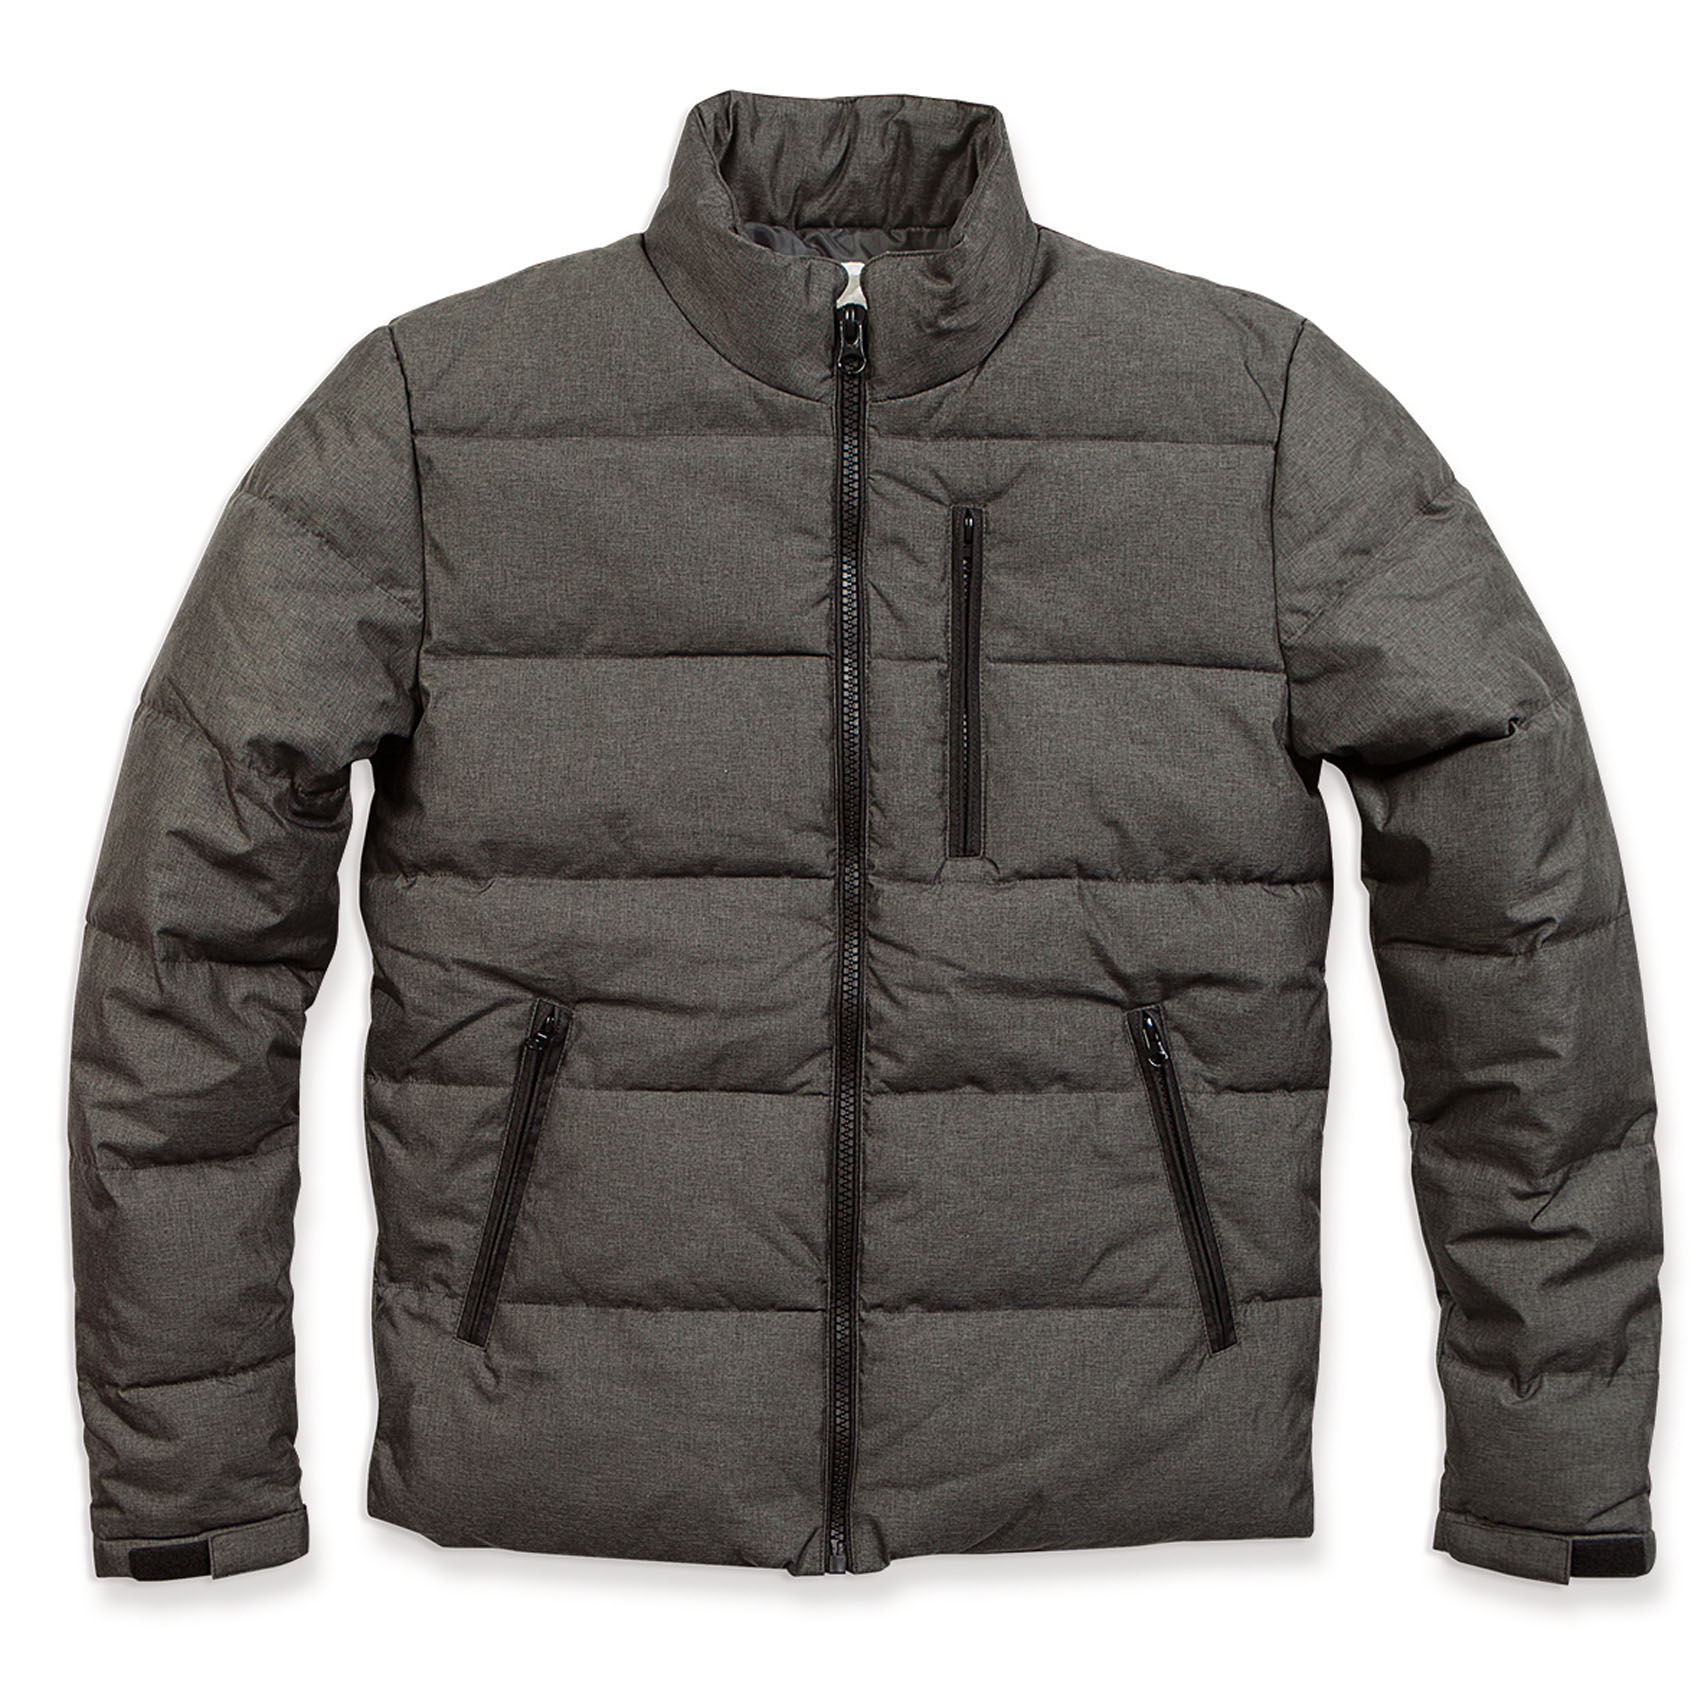 Stedman Jacket Urban Padded for him